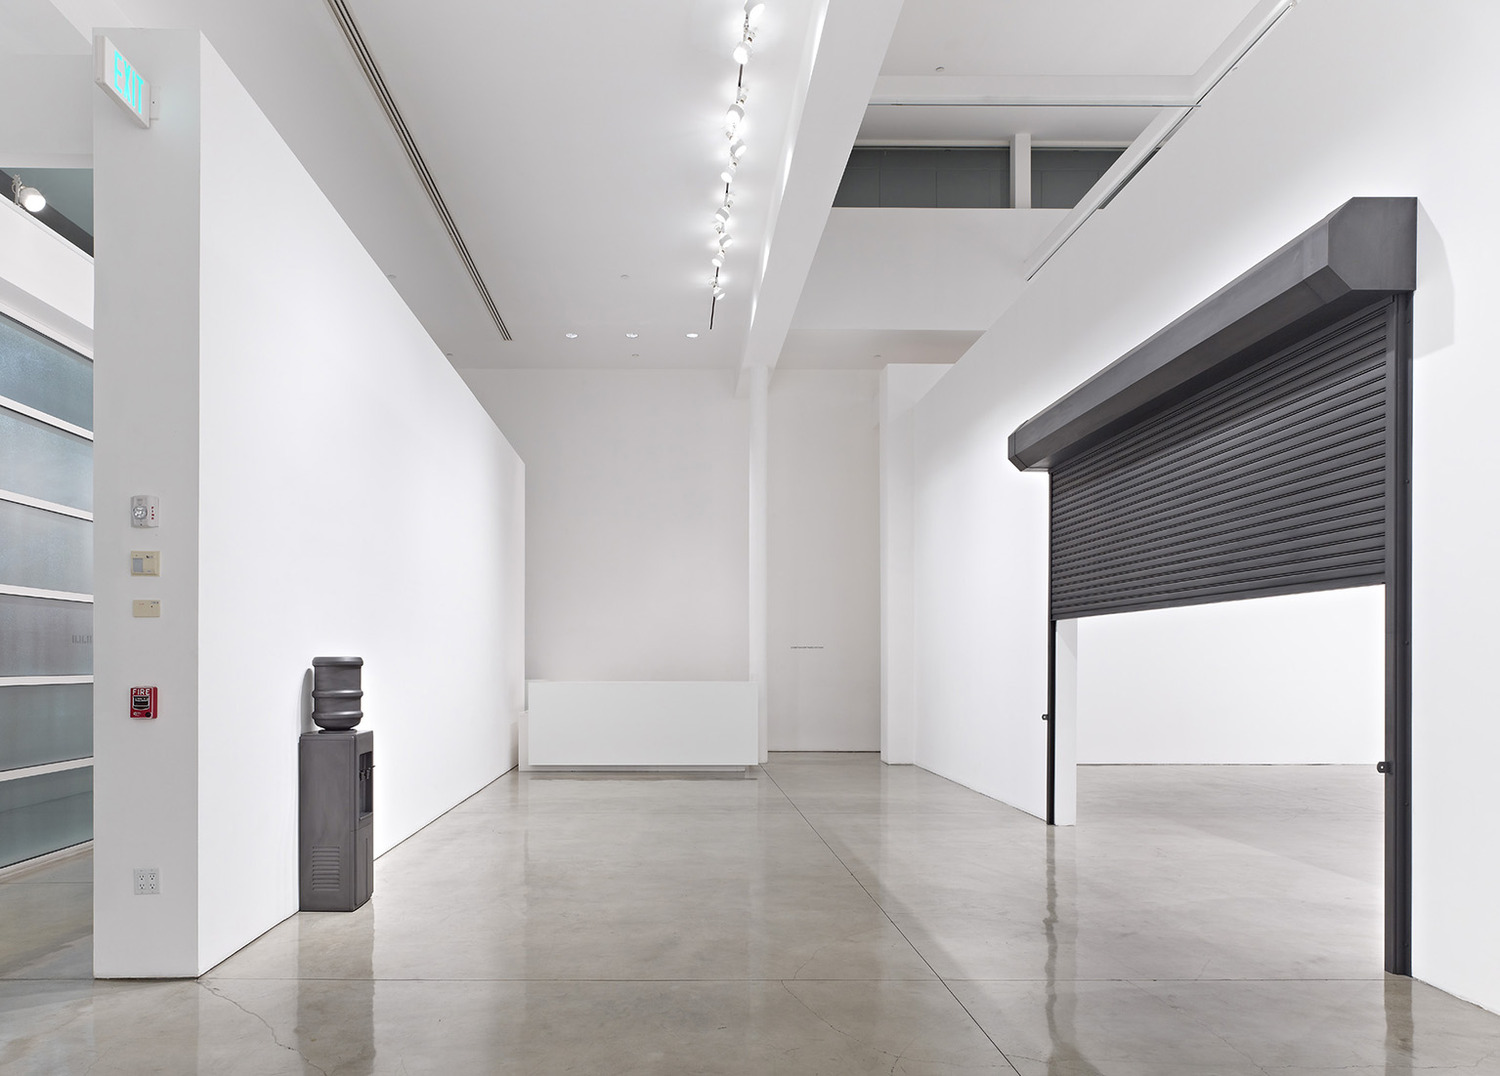 Installation view, '11.11.11', Gagosian Gallery, Los Angeles, 2011